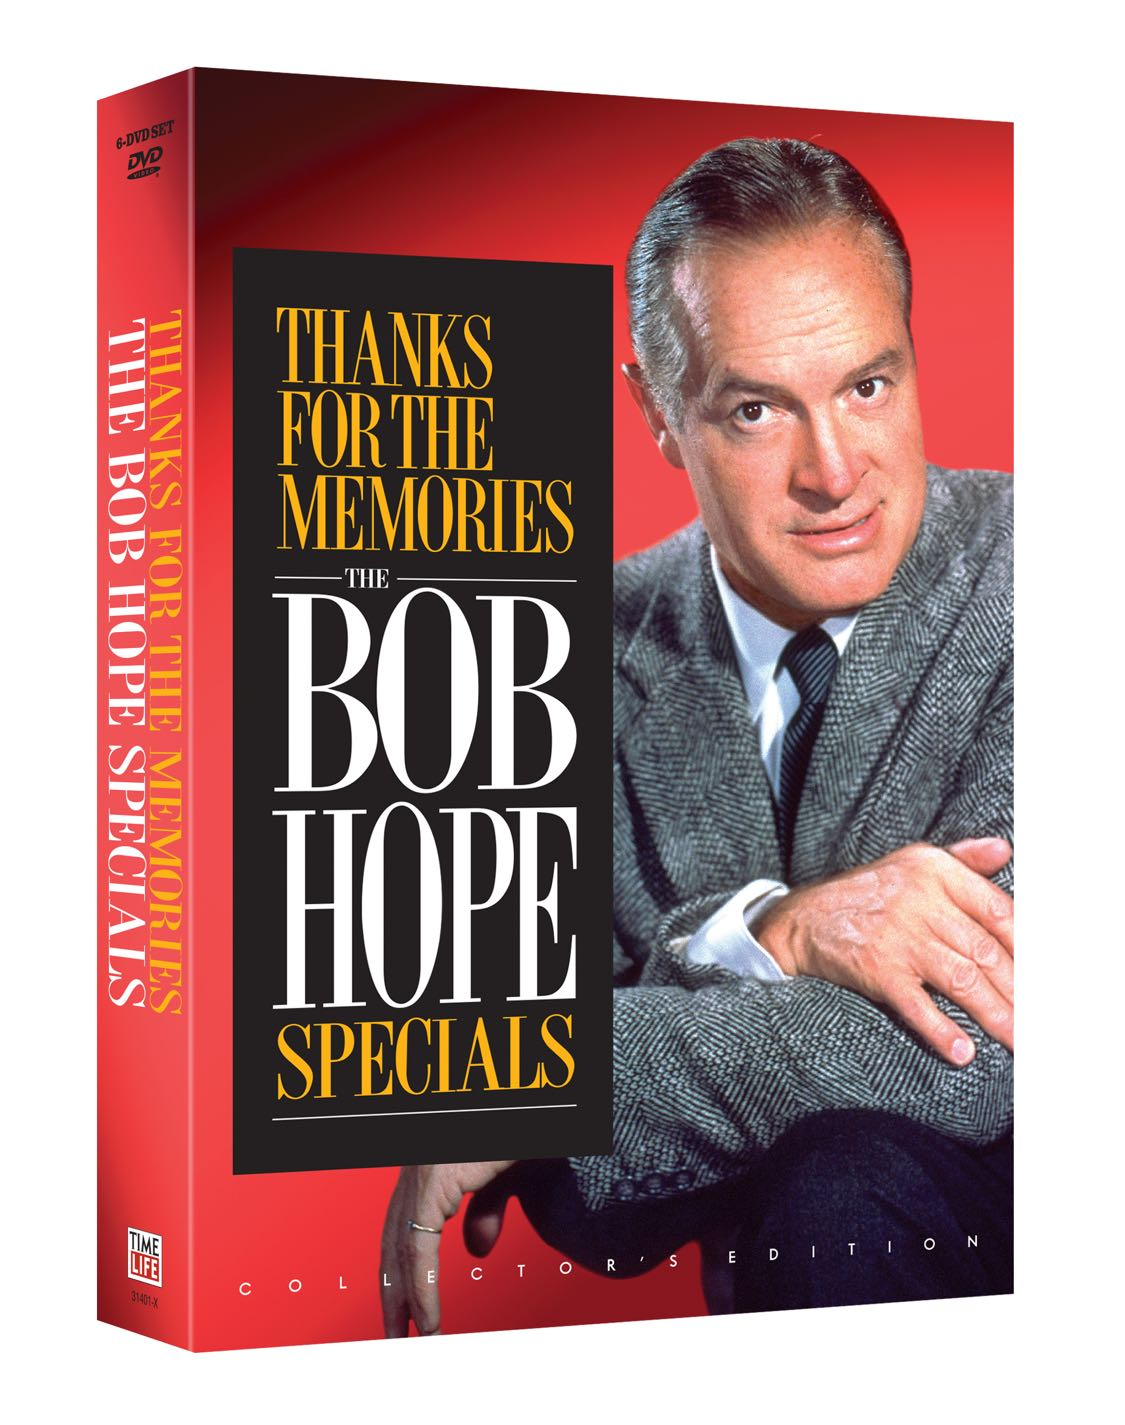 THANKS FOR THE MEMORIES THE BOB HOPE SPECIALS DVD